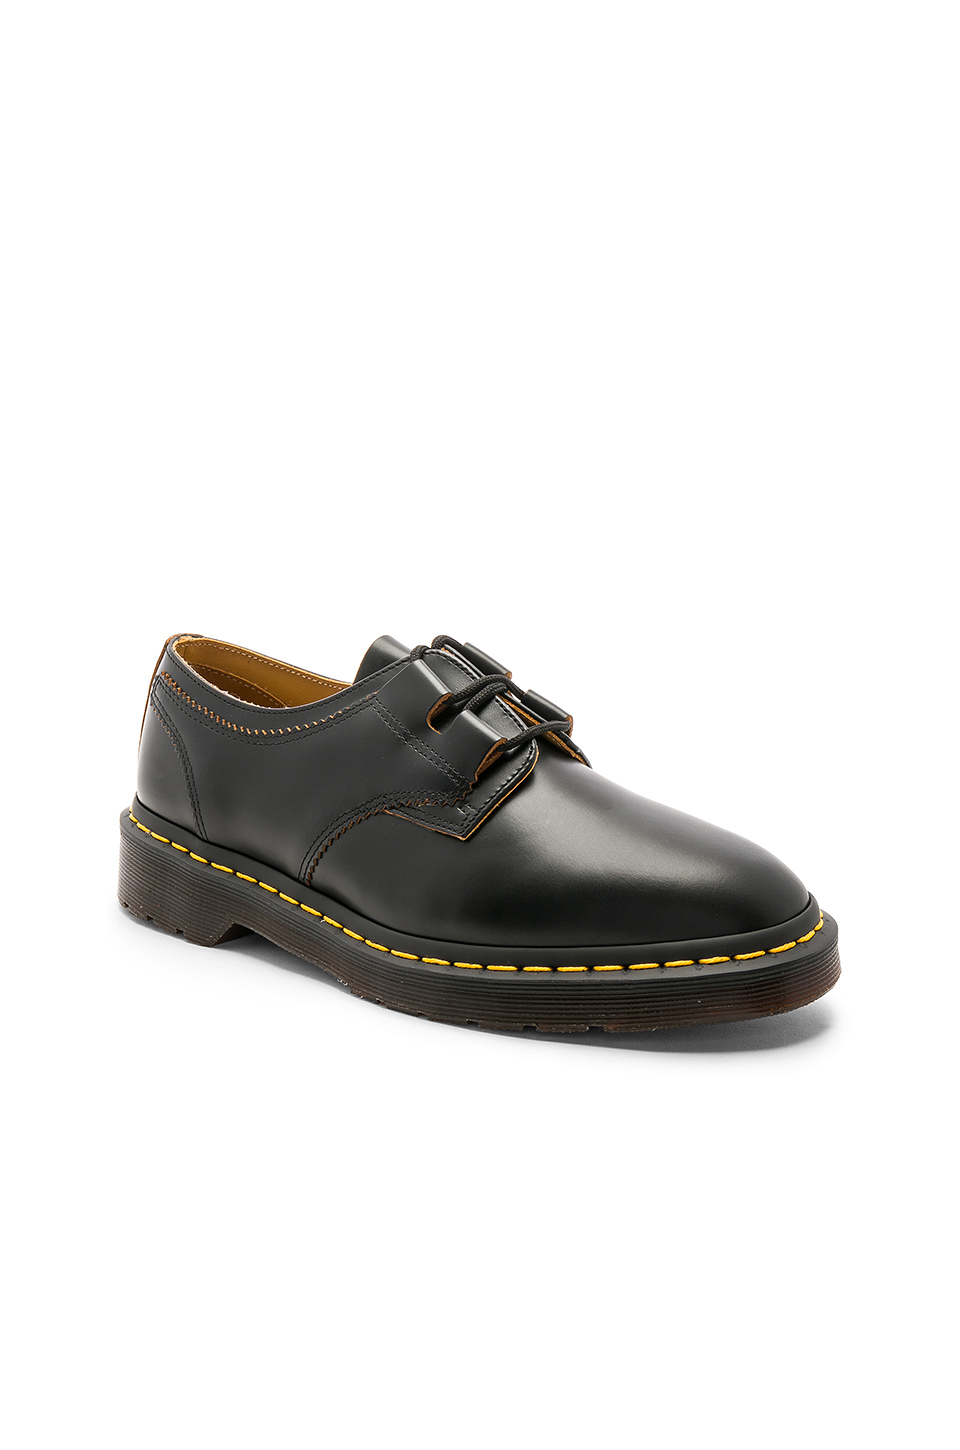 Dr. Martens Originals Archive 1461 Ghillie in Black